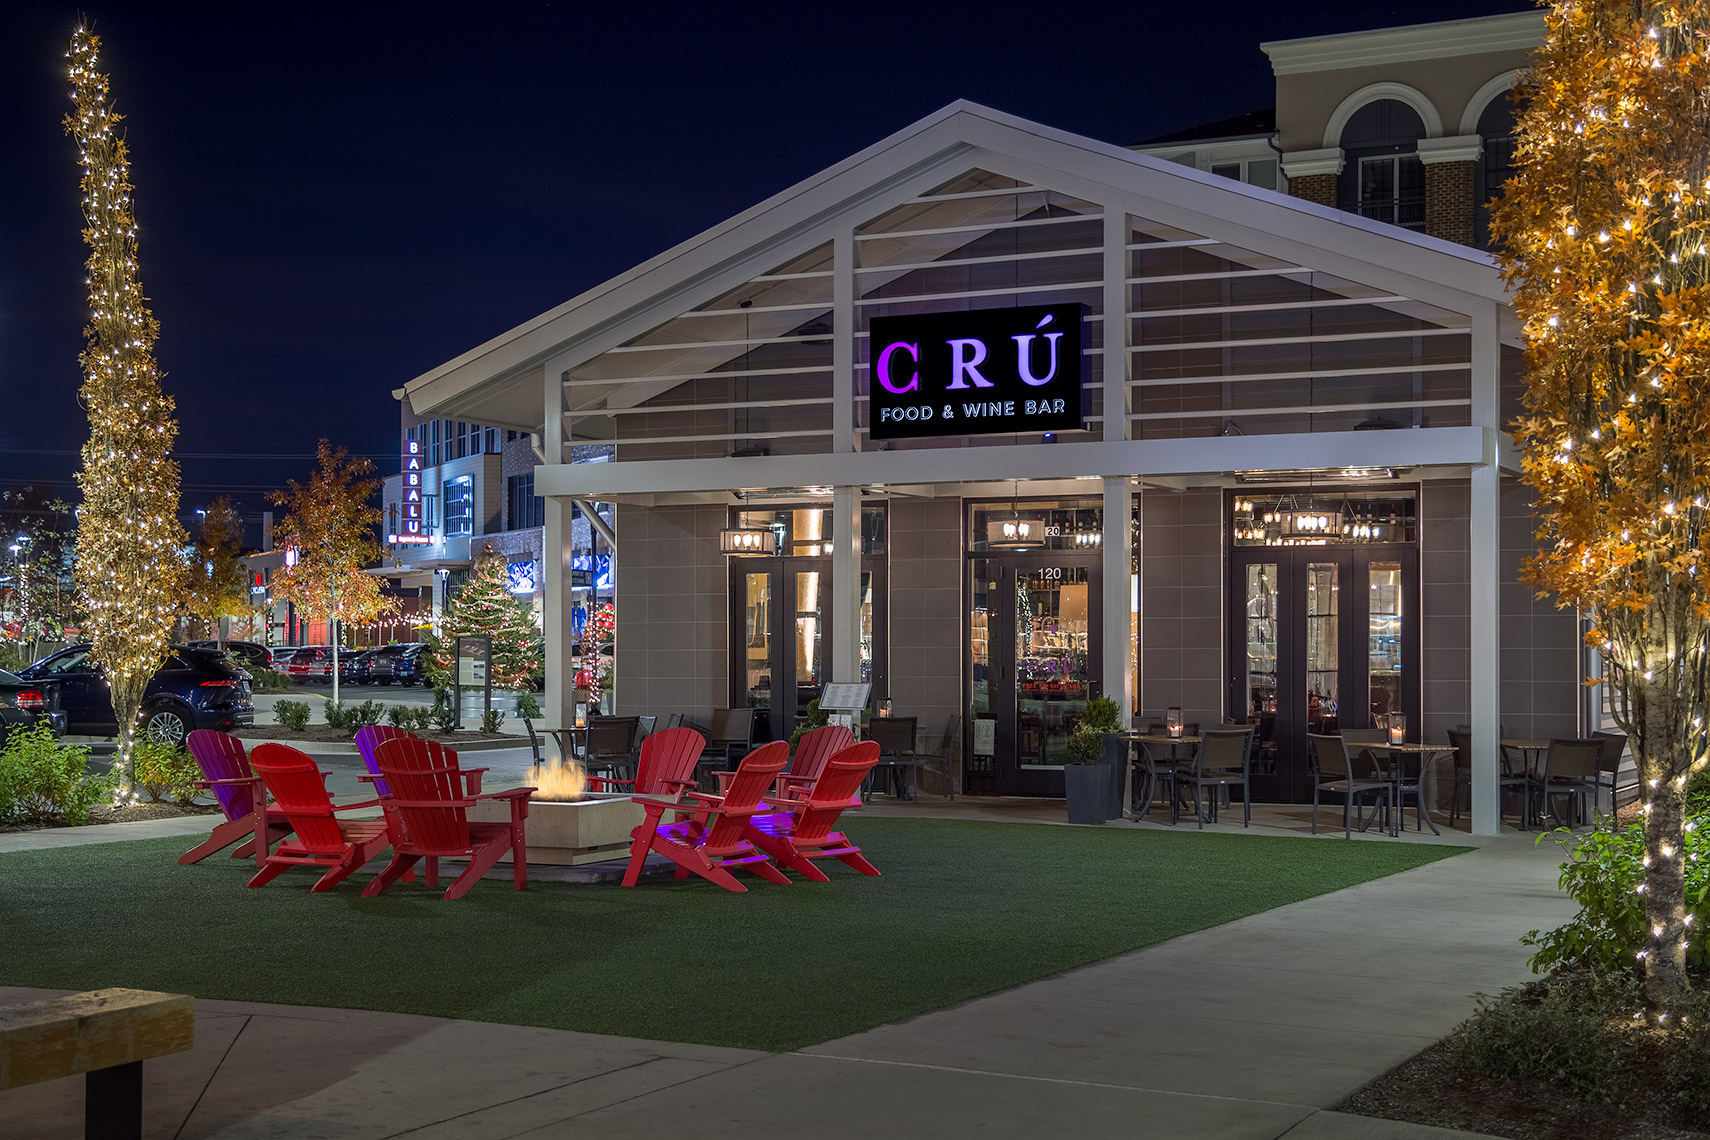 CRU wine bar at night from right